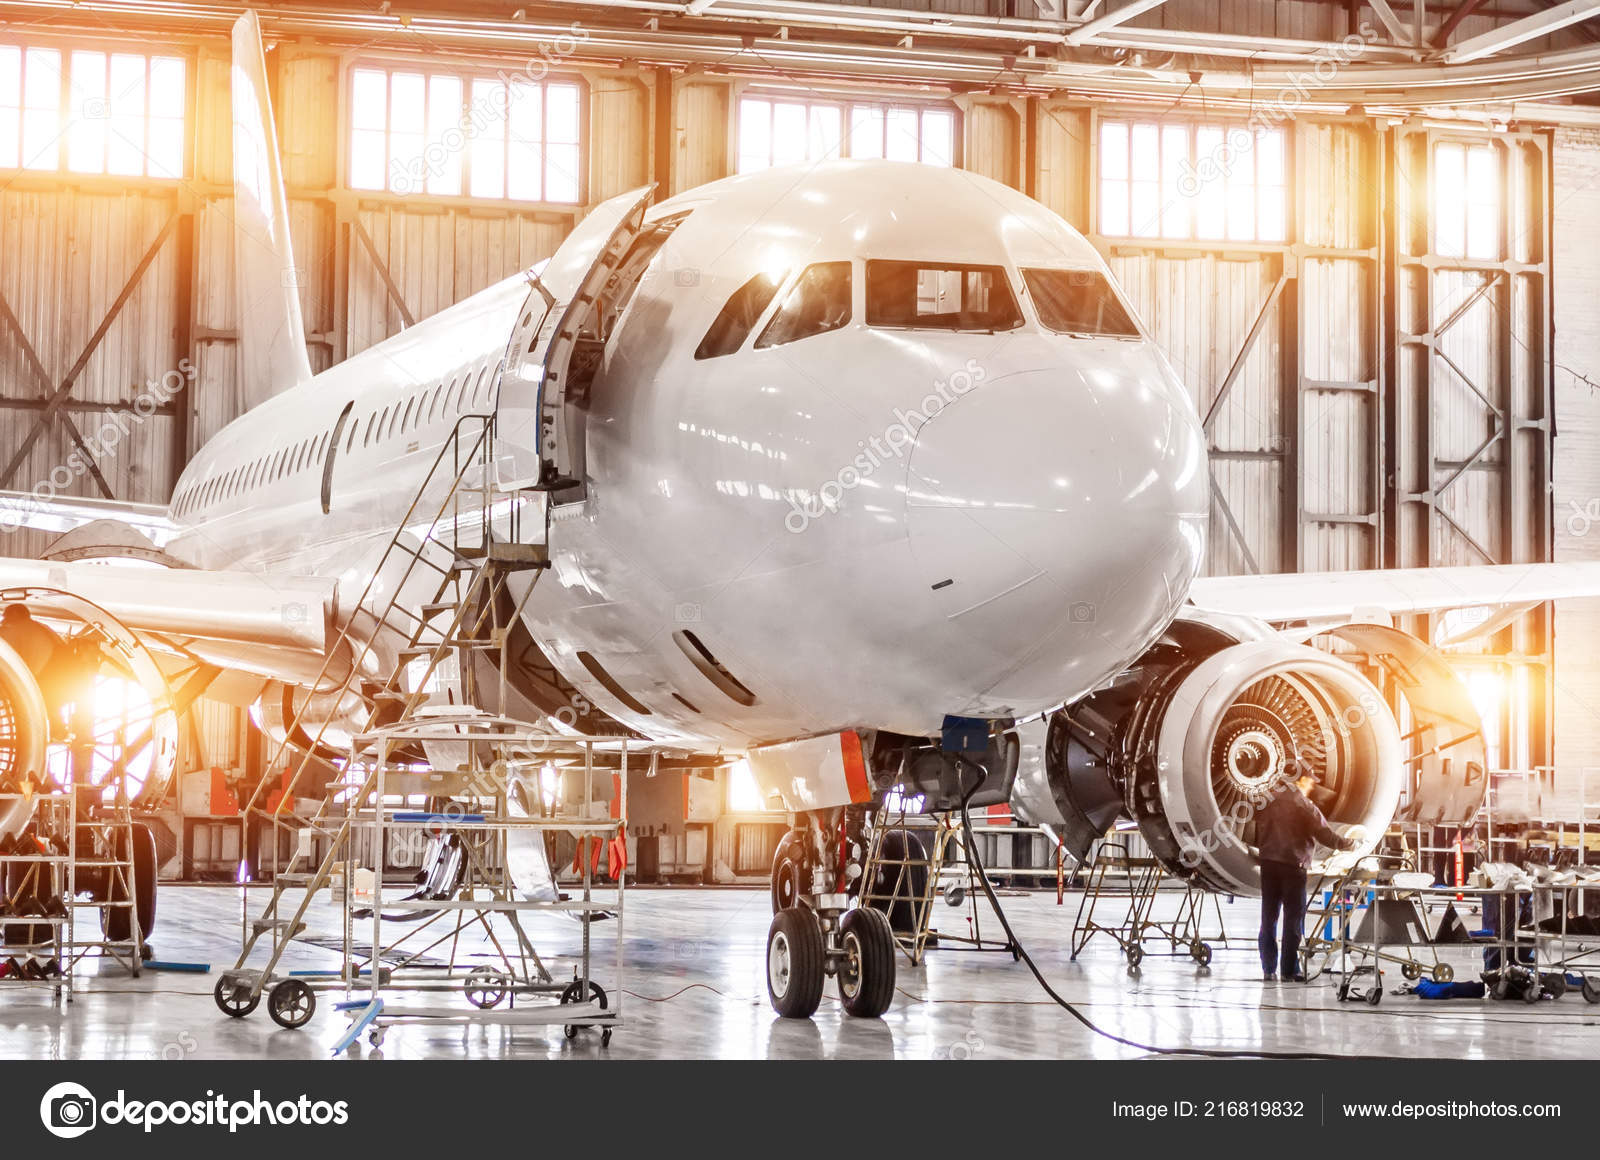 Airplane Maintenance Passenger Commercial Airplane Maintenance Engine Turbo Jet